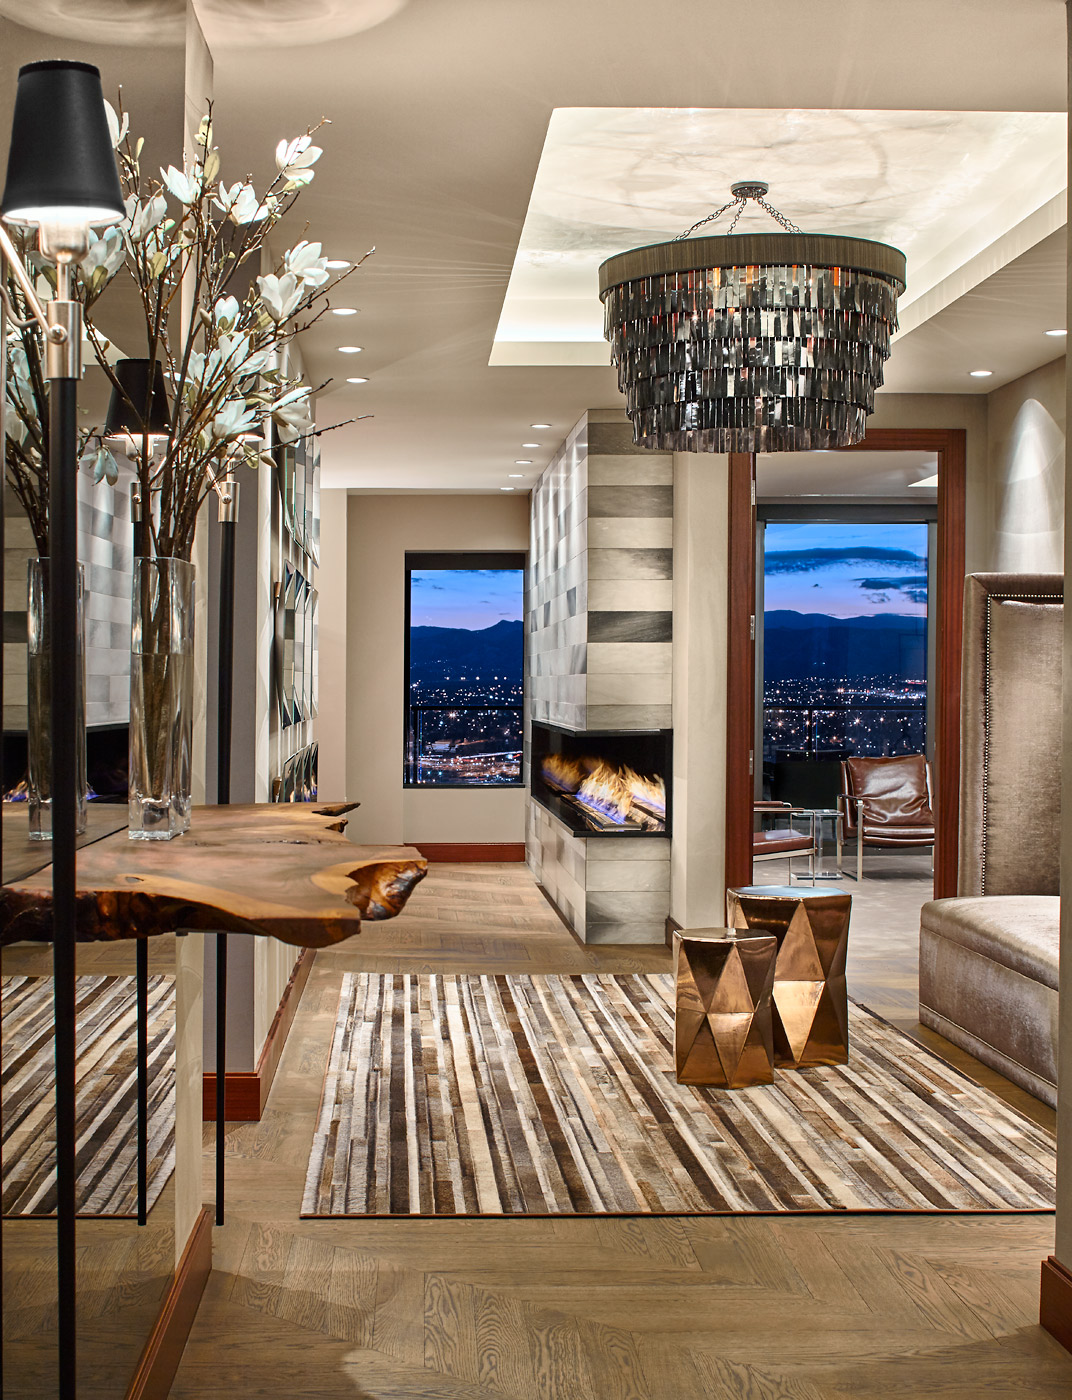 Four Seasons penthouse 02 by DH INTERIORS INC.